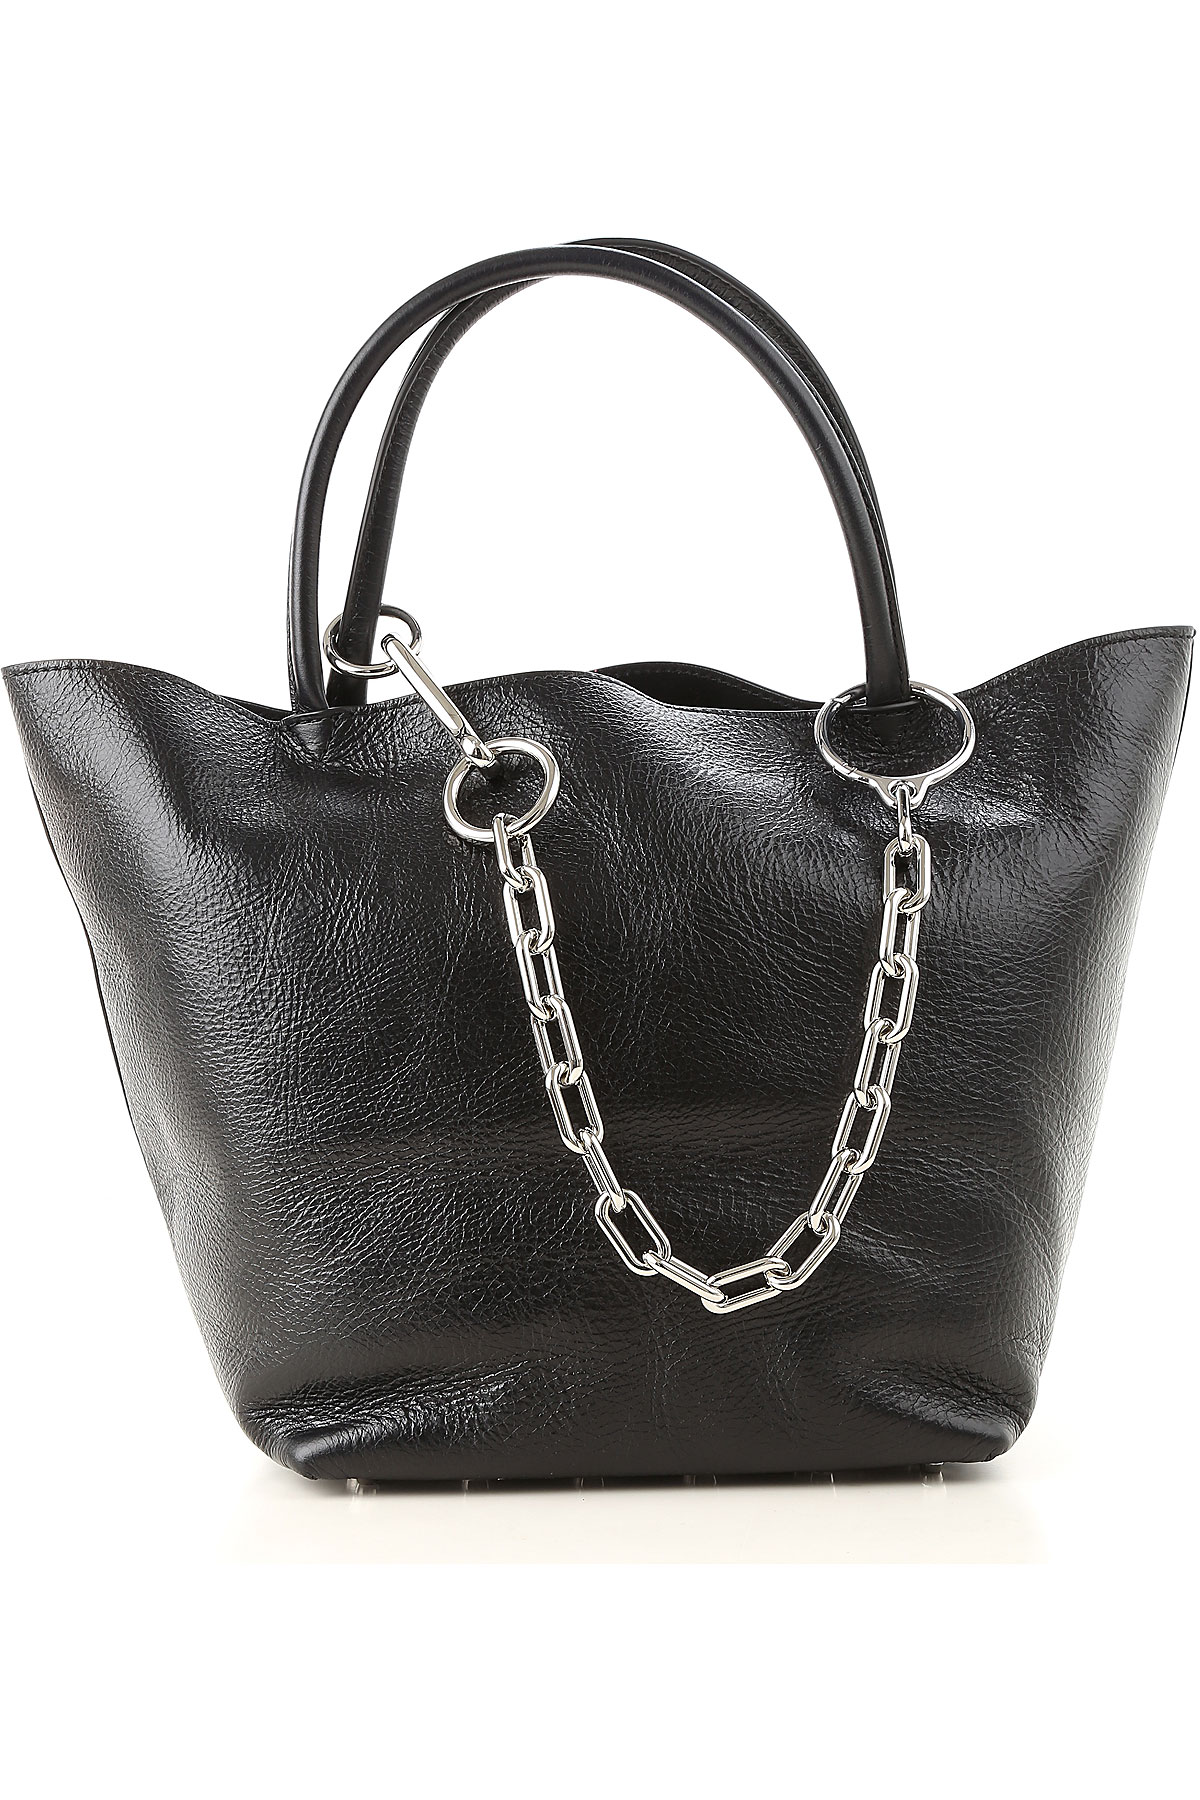 Image of Alexander Wang Tote Bag, Black, Leather, 2017